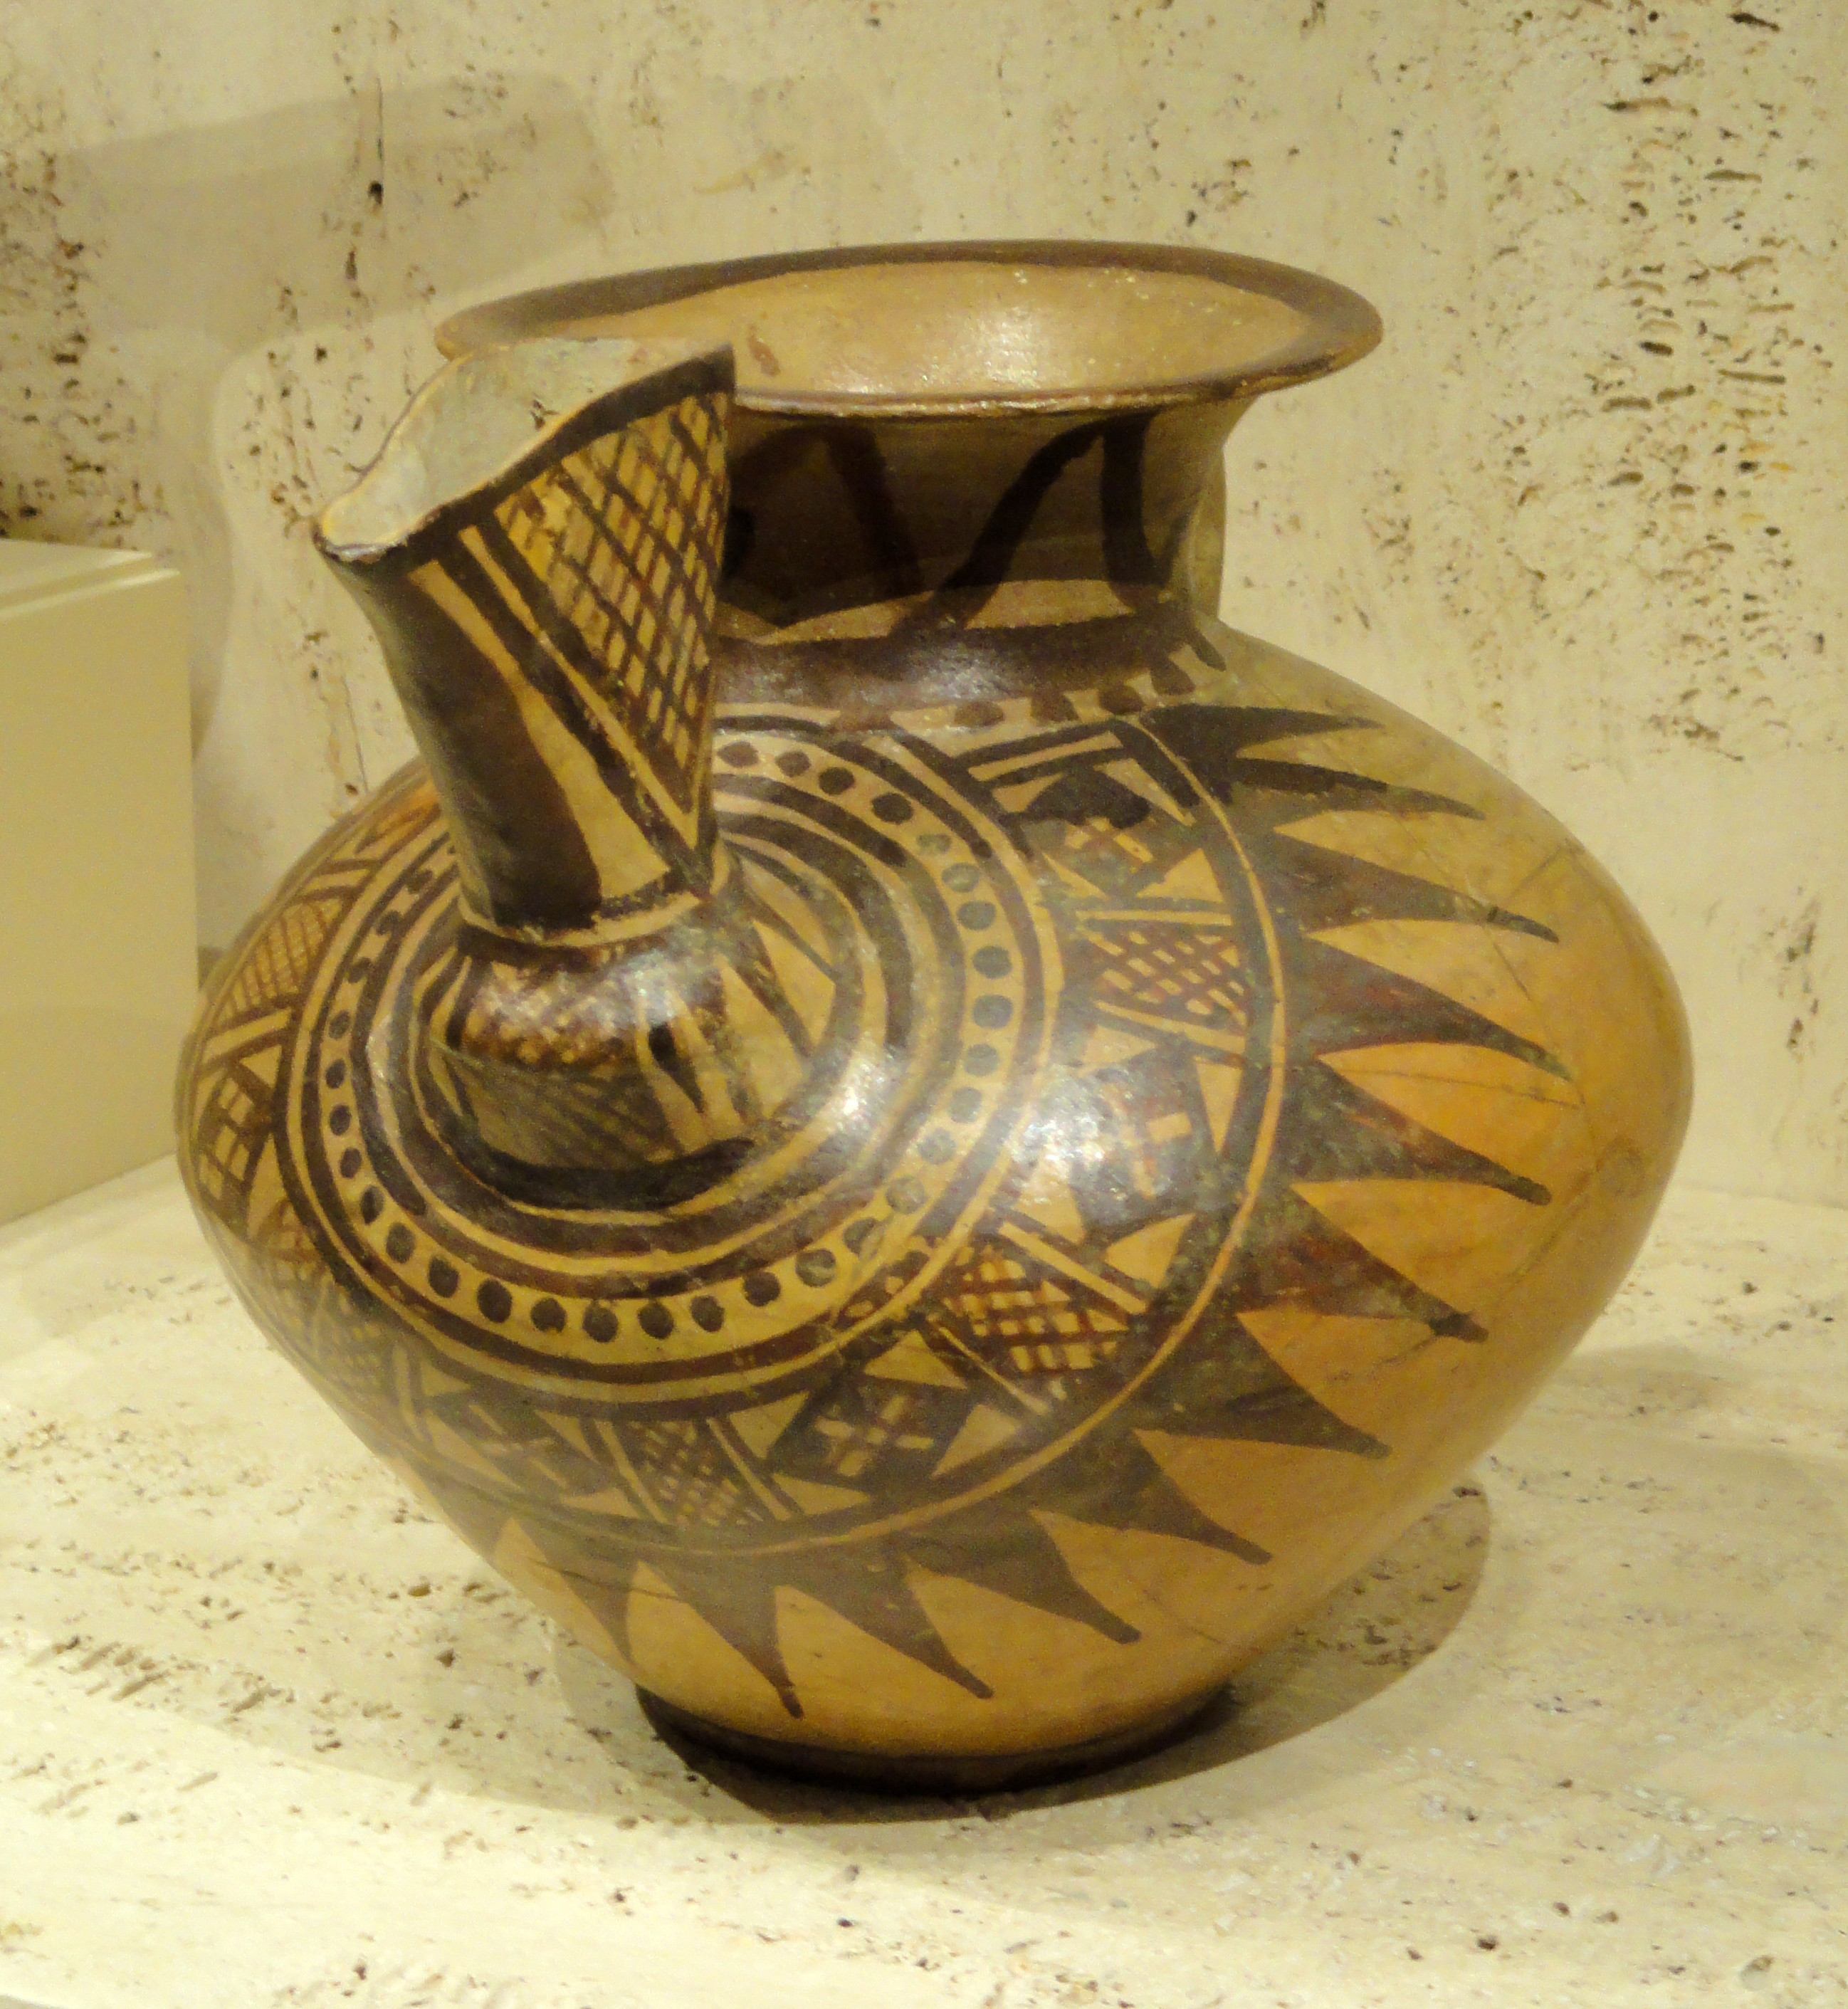 mexican pottery vase of filevase tepe sialk iran early 1st millennium bce nelson inside filevase tepe sialk iran early 1st millennium bce nelson